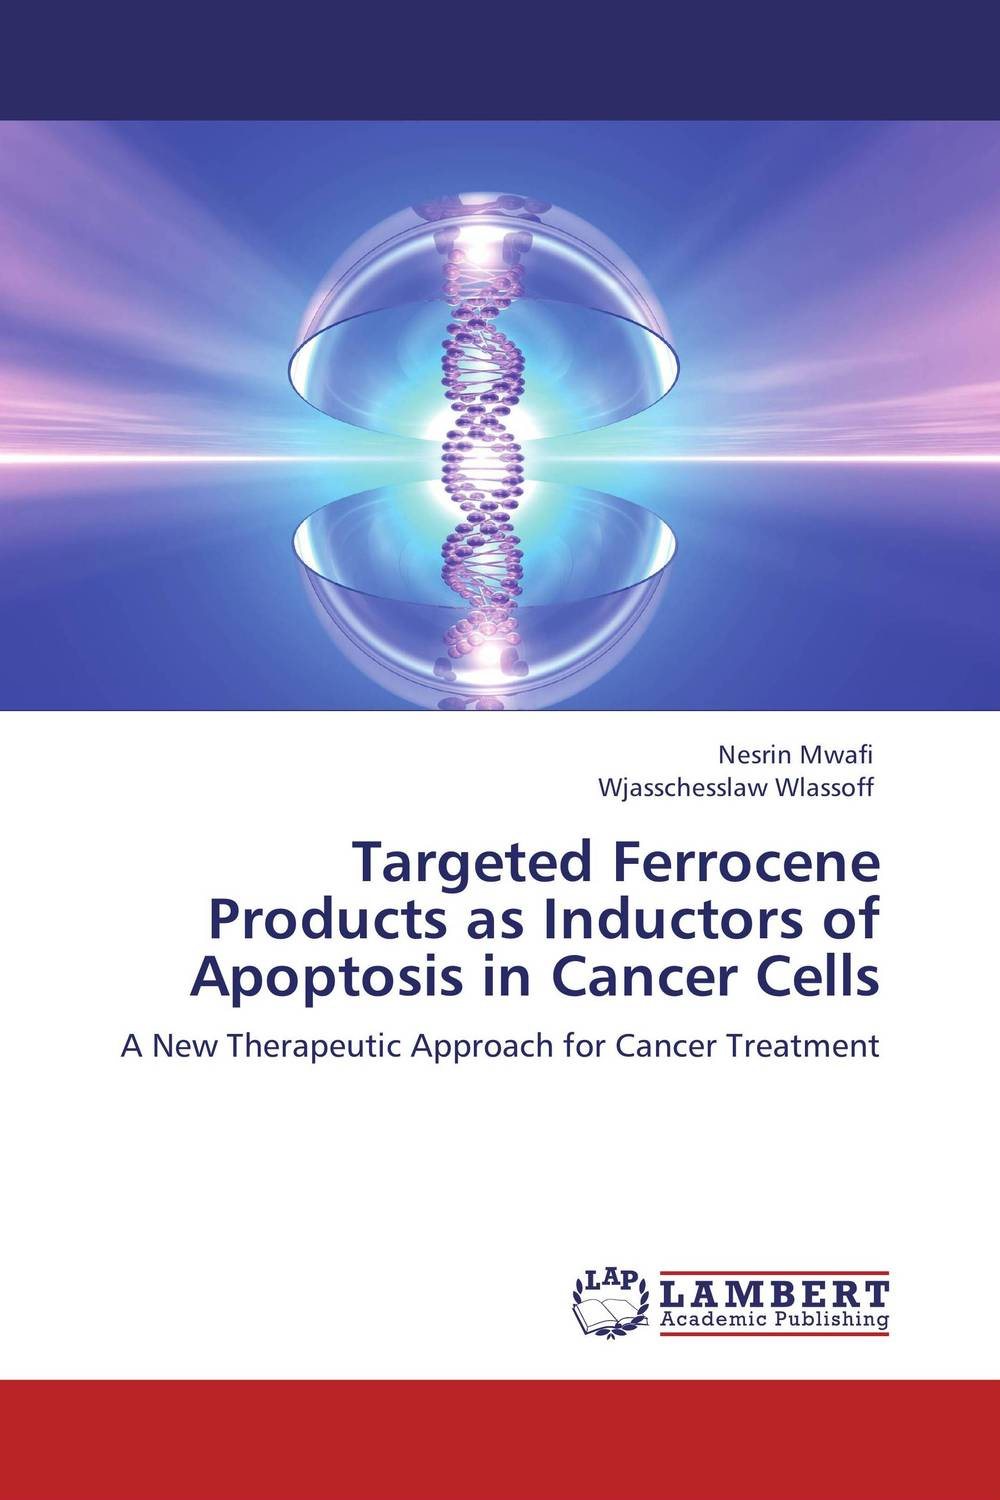 Targeted Ferrocene Products as Inductors of Apoptosis in Cancer Cells seeing things as they are